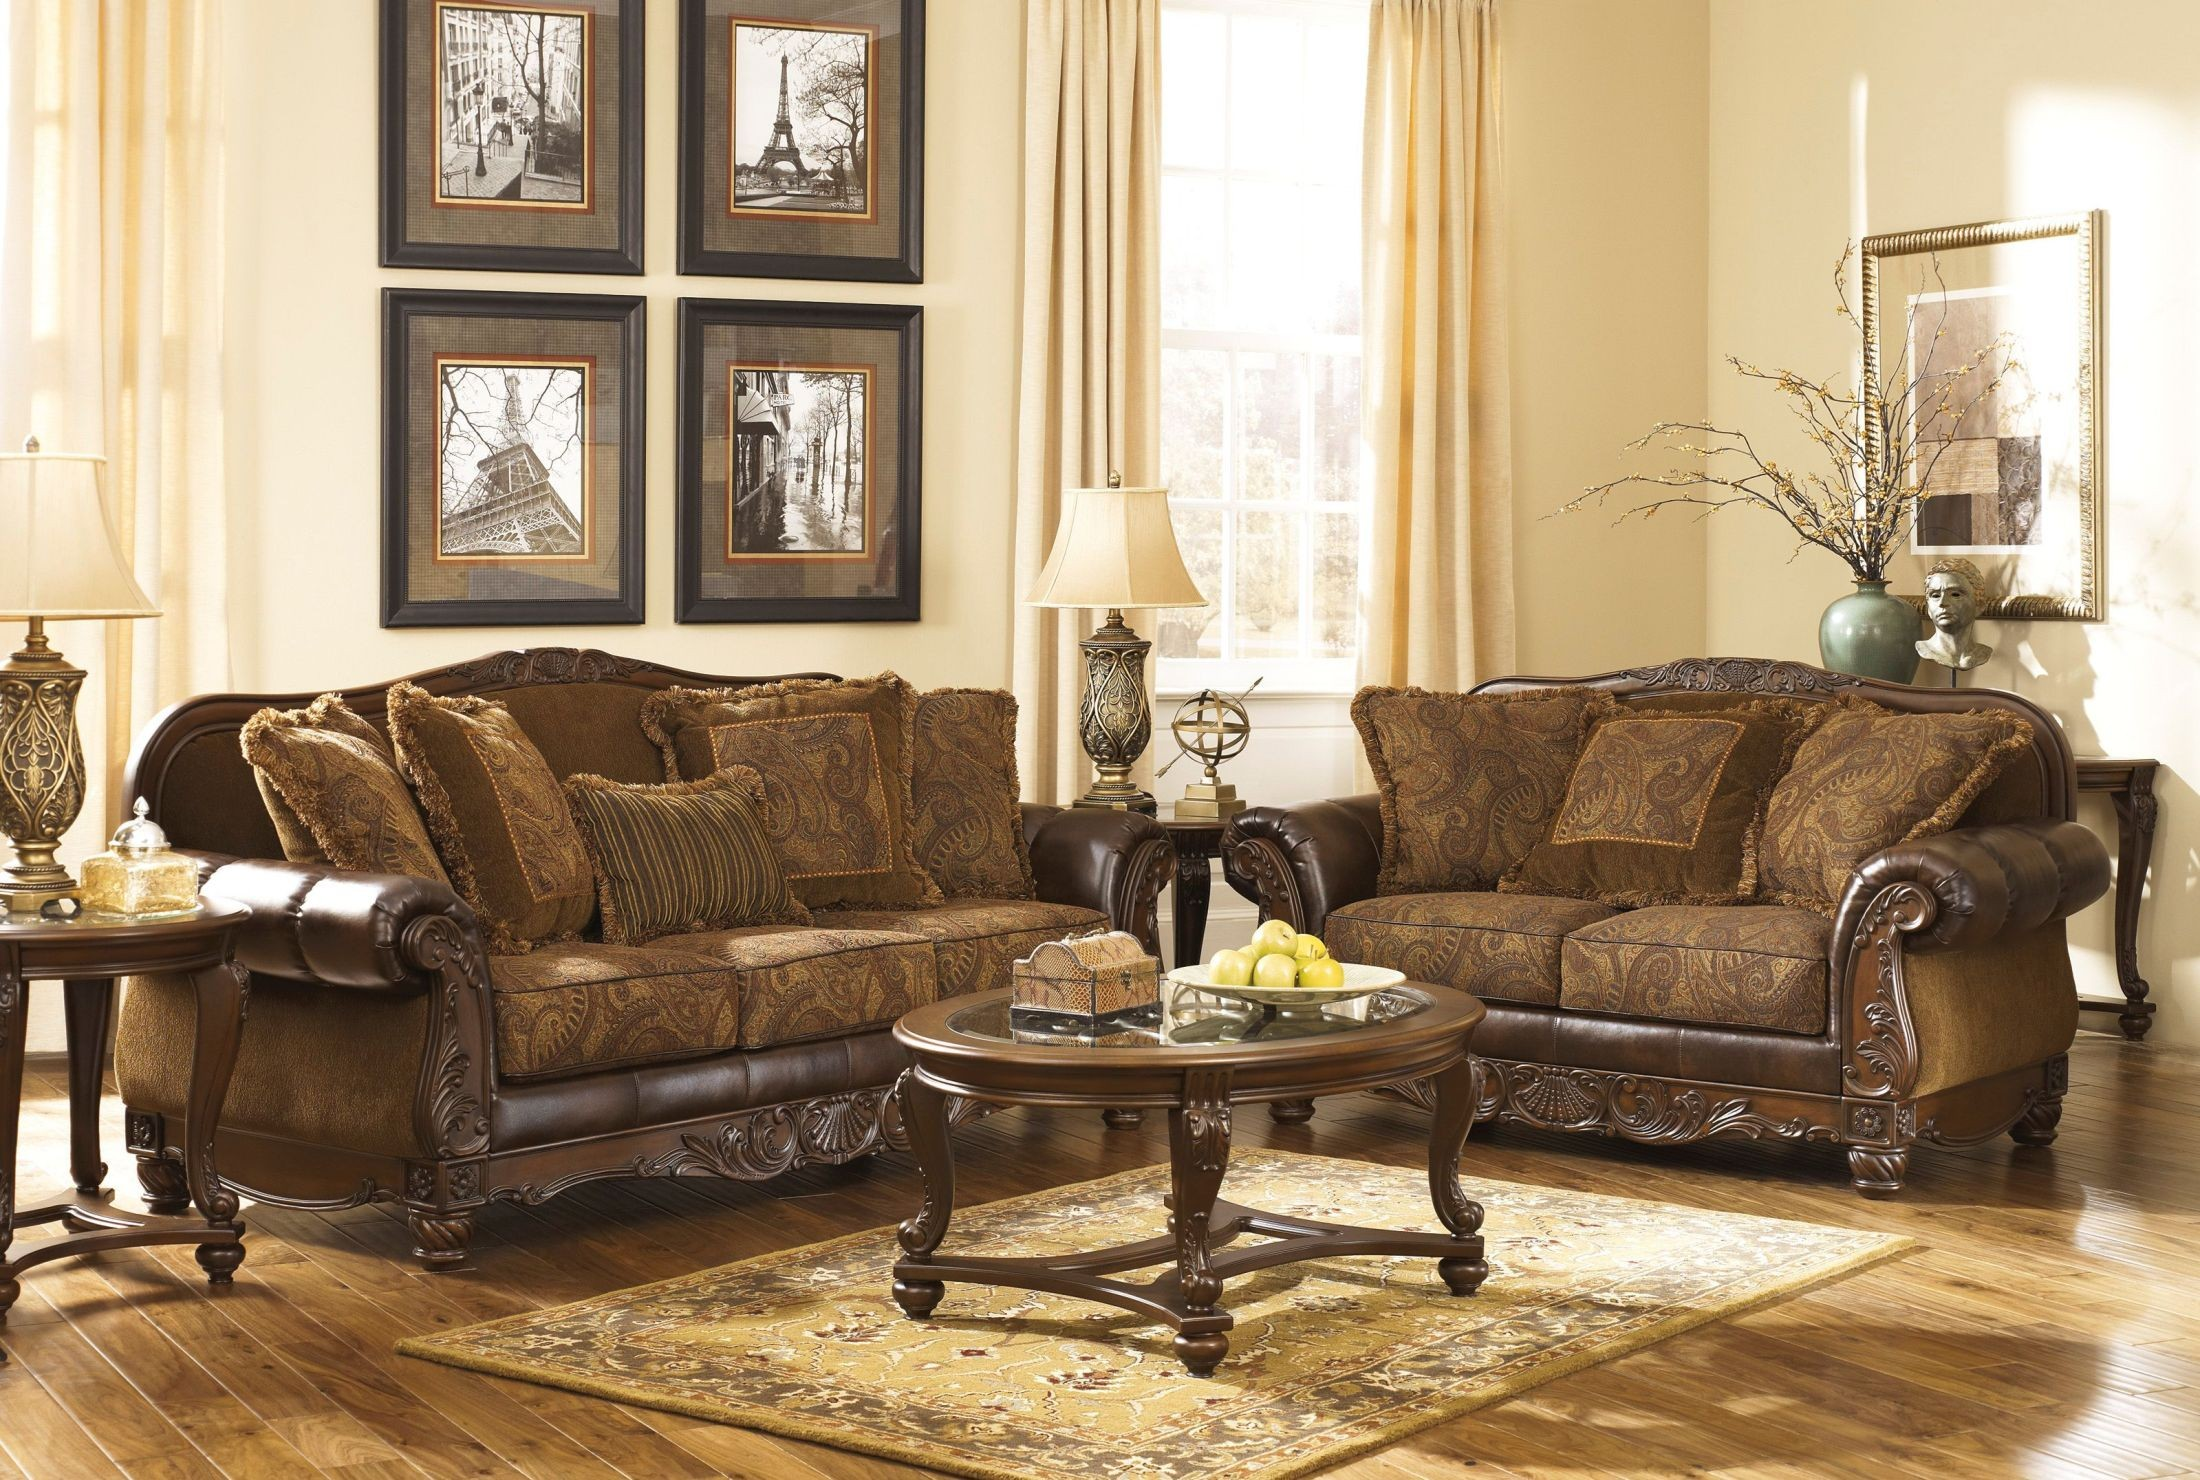 Sofa Set For Drawing Room With Price Fresco Durablend Antique Living Room Set From Ashley